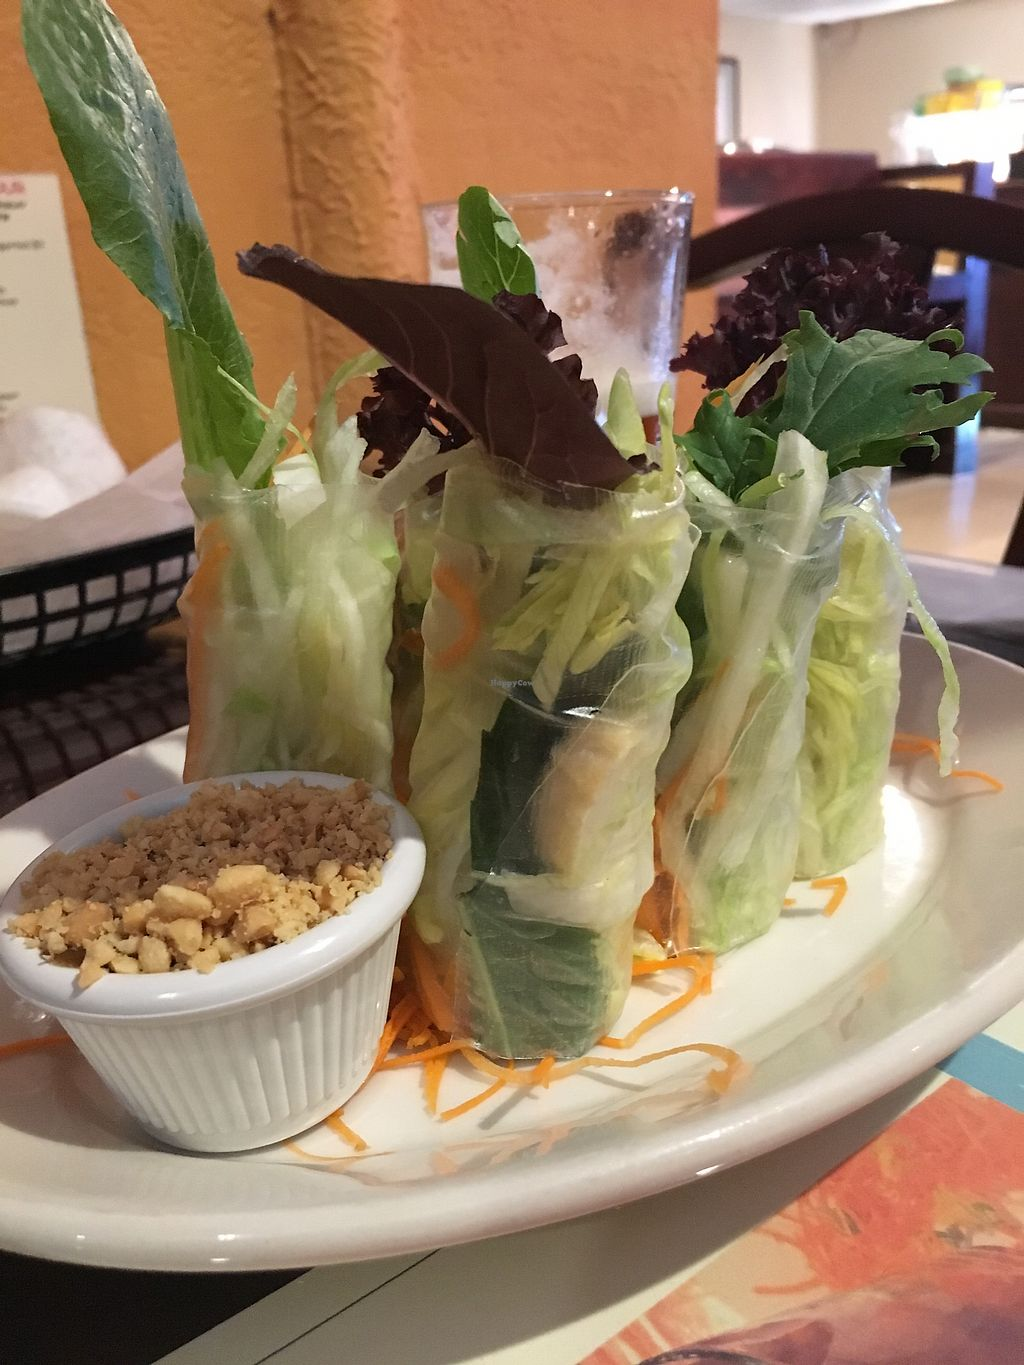 """Photo of EZ Thai Too  by <a href=""""/members/profile/MyGreenTongue"""">MyGreenTongue</a> <br/>Garden rolls <br/> September 9, 2017  - <a href='/contact/abuse/image/99678/302740'>Report</a>"""